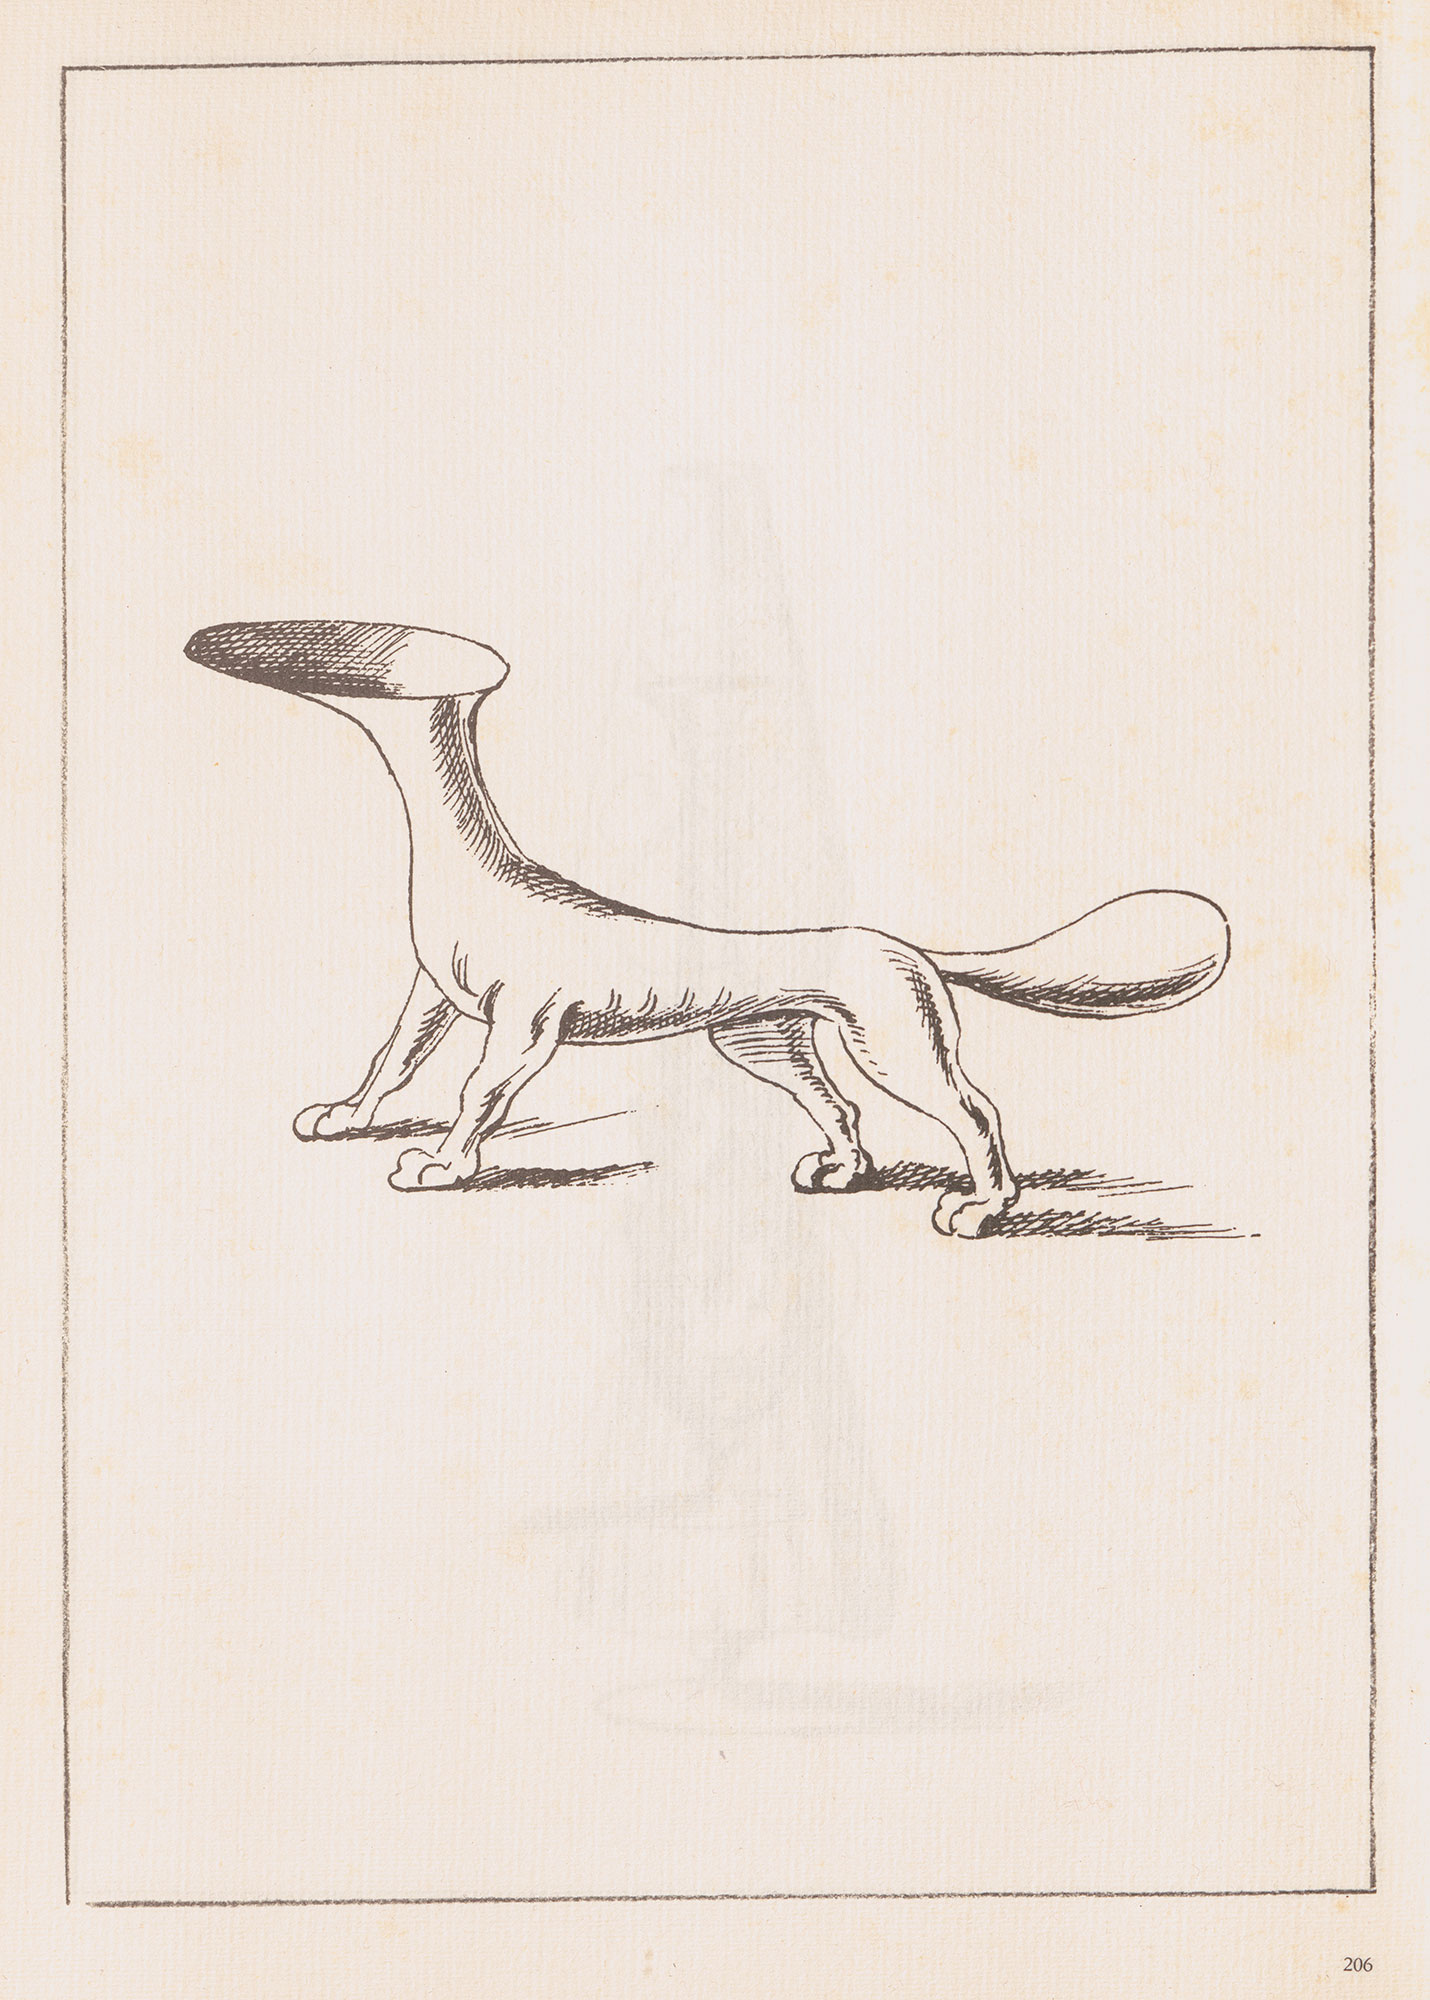 Black and white sketch of a vessel shaped like a standing dog with the bowl for its head